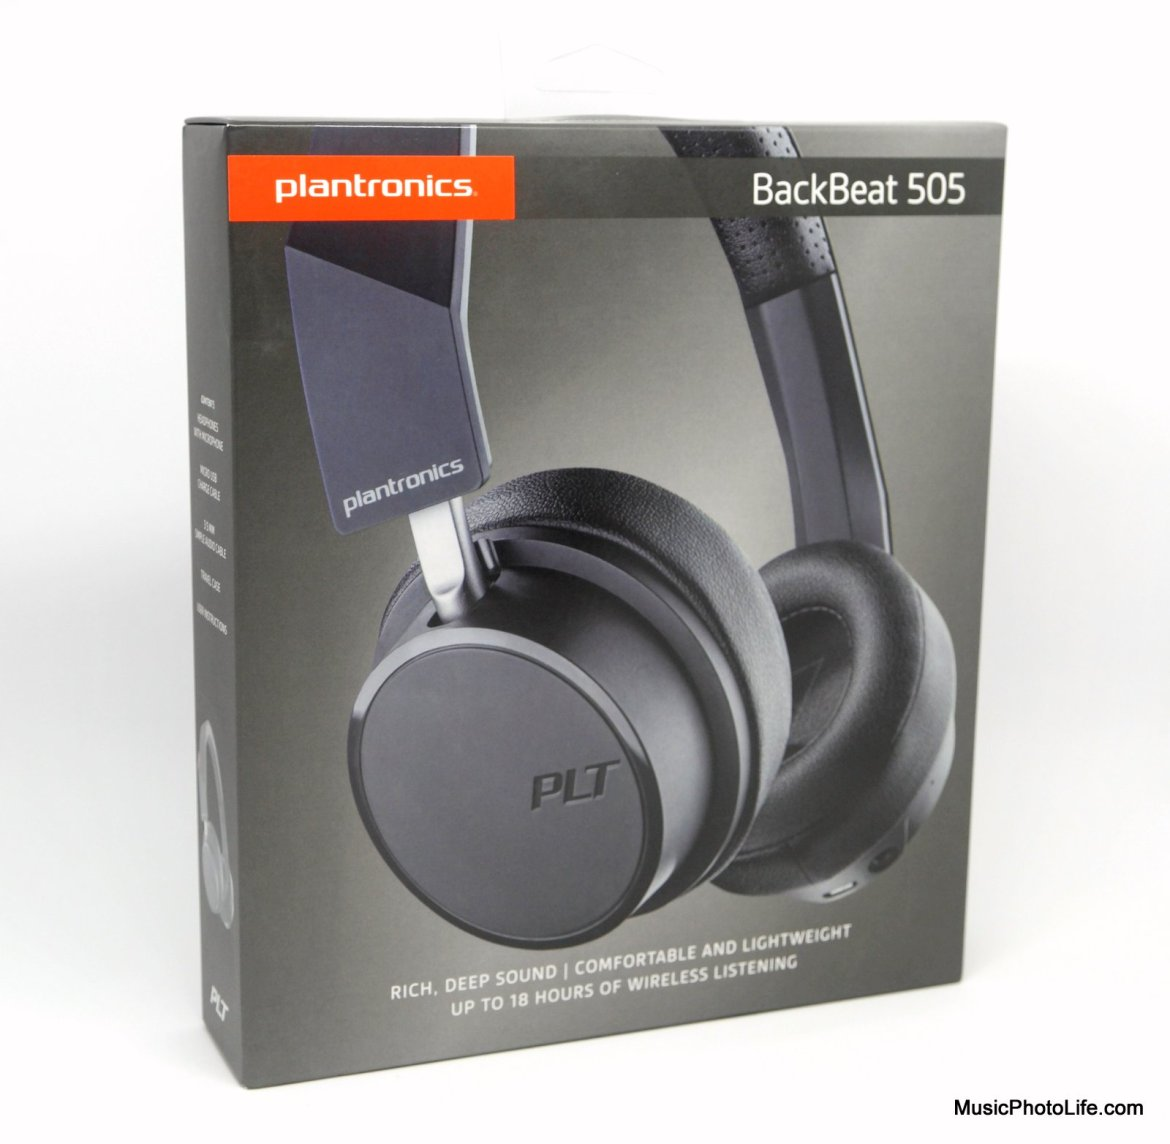 Plantronics BackBeat 505 review by musicphotolife.com